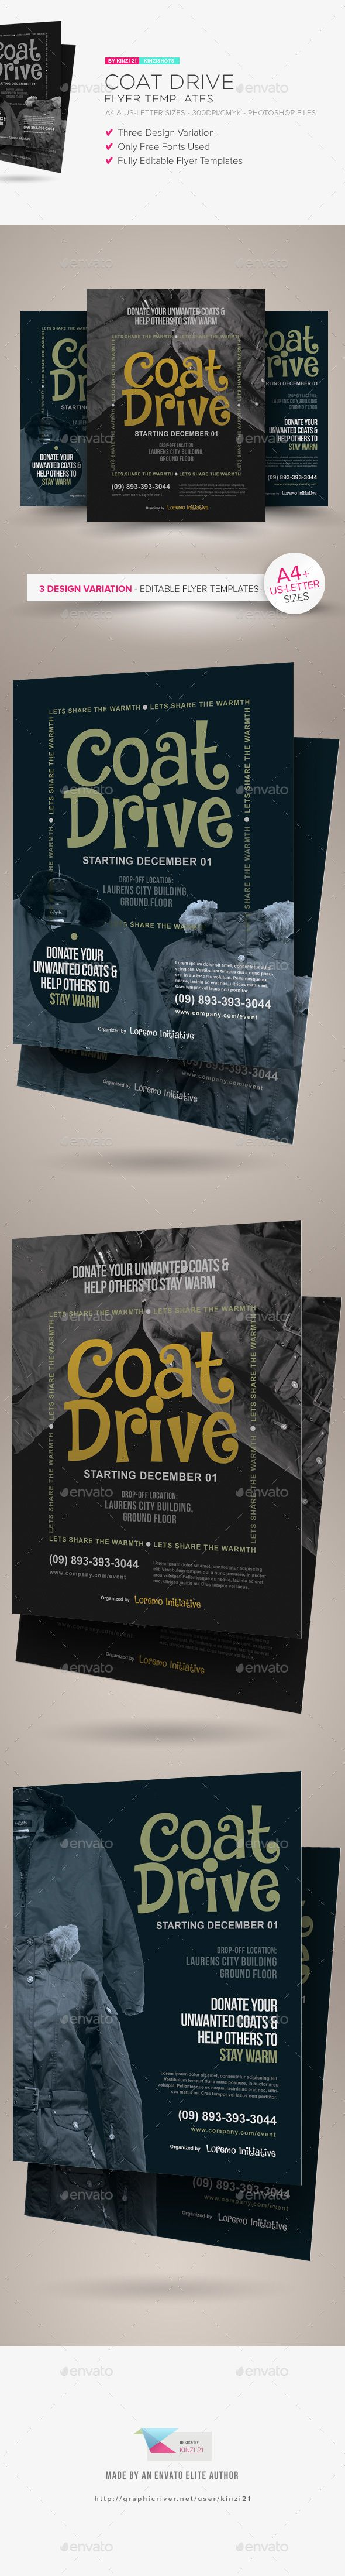 Coat Drive Flyer Templates — Photoshop PSD #donation #blanket • Download here ➝ https://graphicriver.net/item/coat-drive-flyer-templates/21131275?ref=pxcr